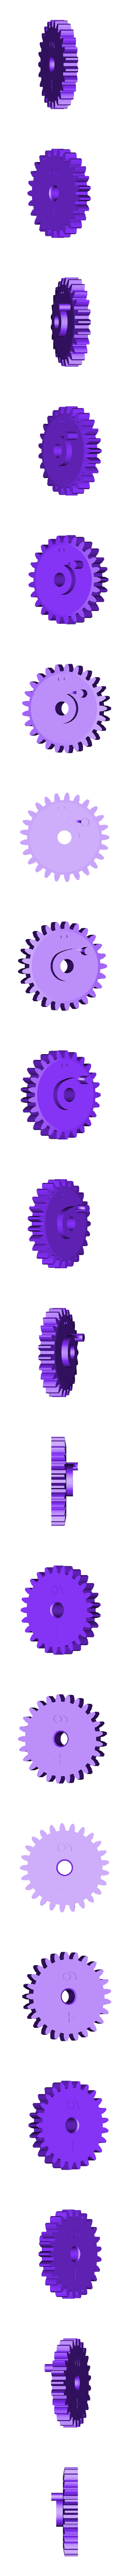 Gear6A.stl Download STL file 7-Segments • 3D printable object, fhuable